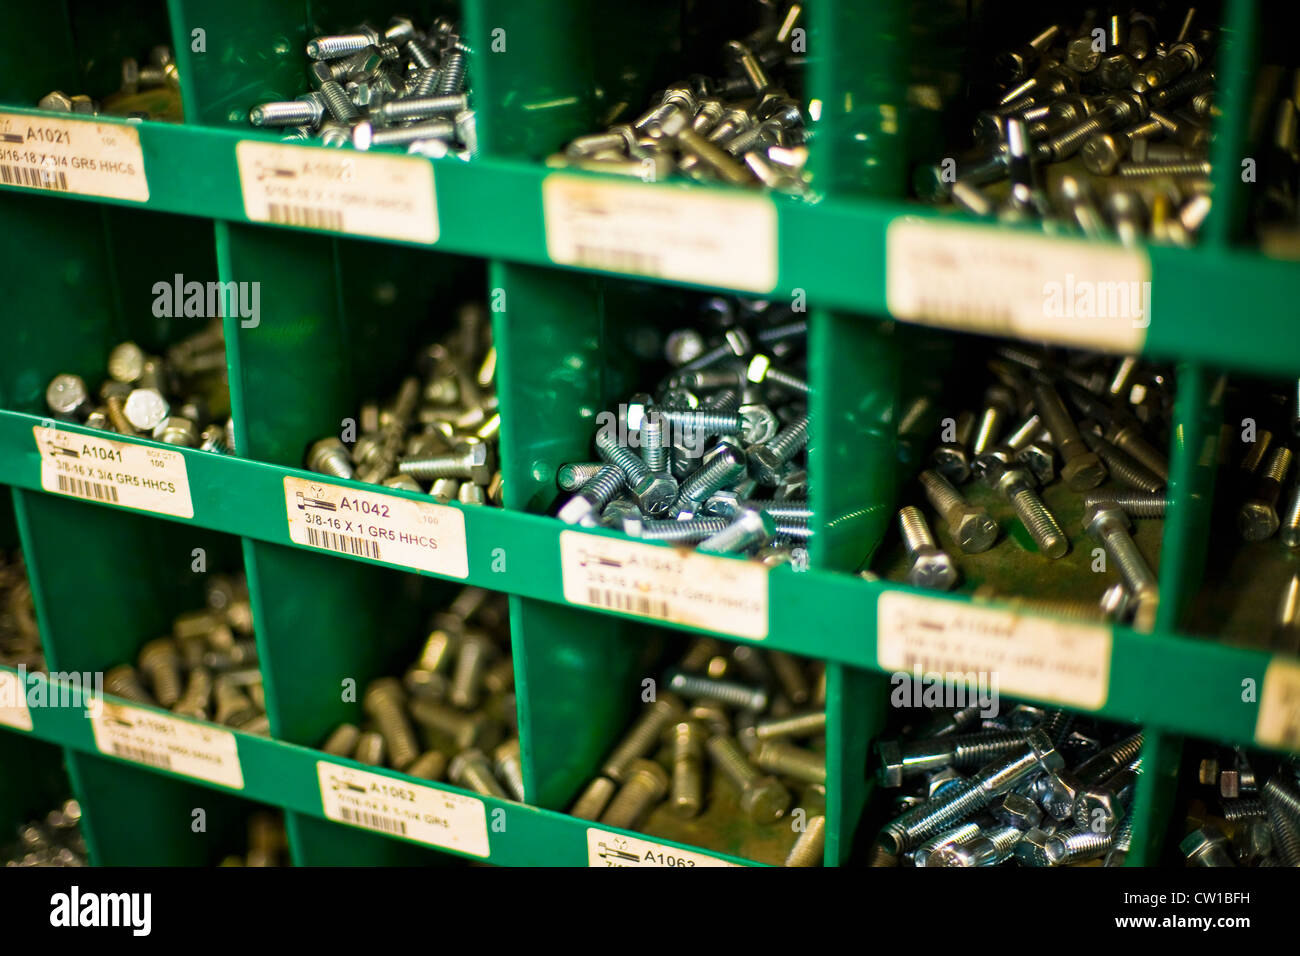 Nuts and Bolts in Hardware Store Stock Photo: 49818149 - Alamy